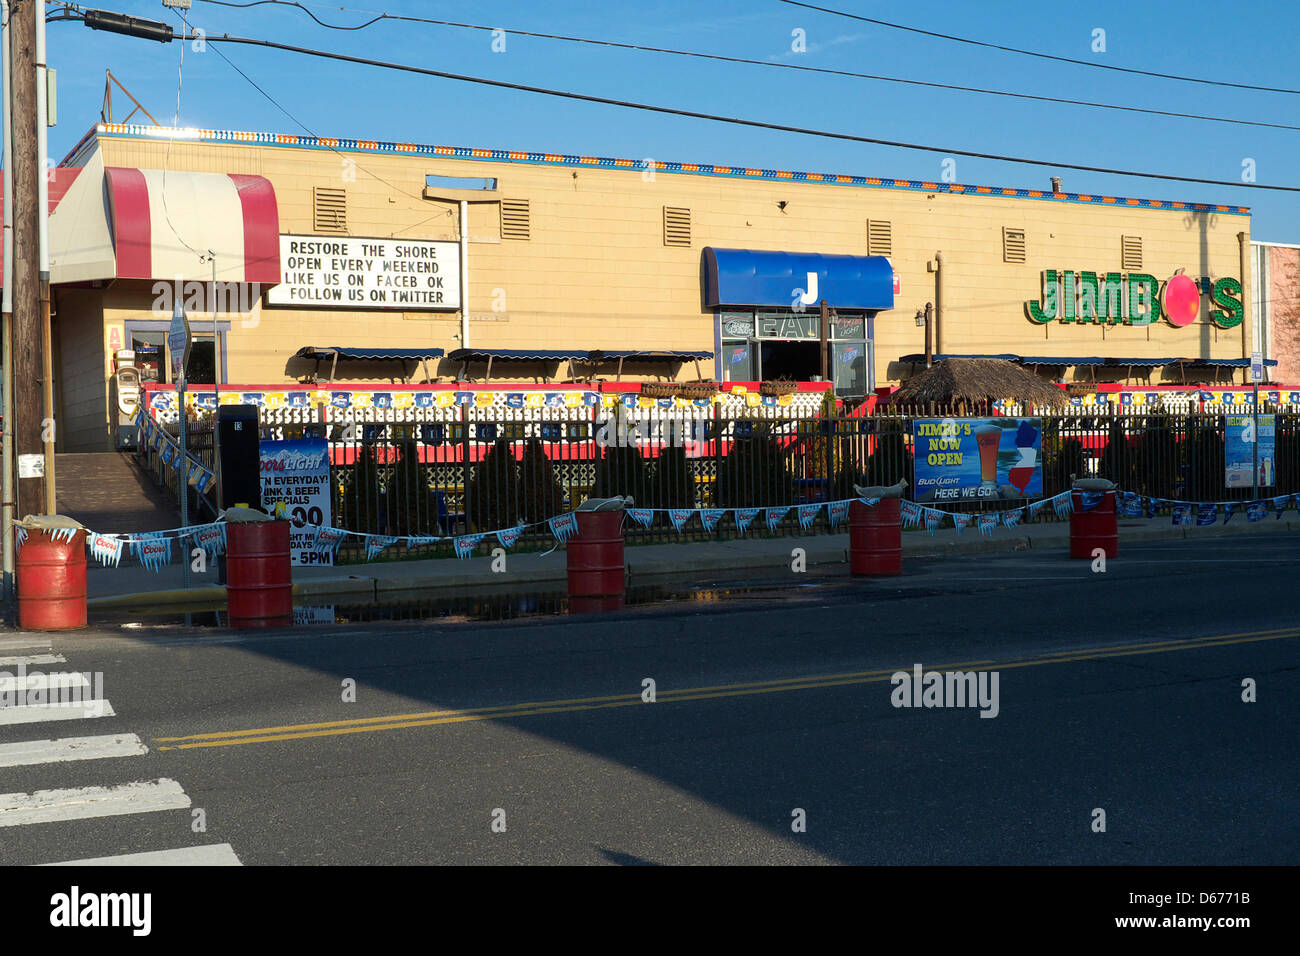 Jimbos Restaurant And Bar In Seaside Heights Nj Usa The Very Well